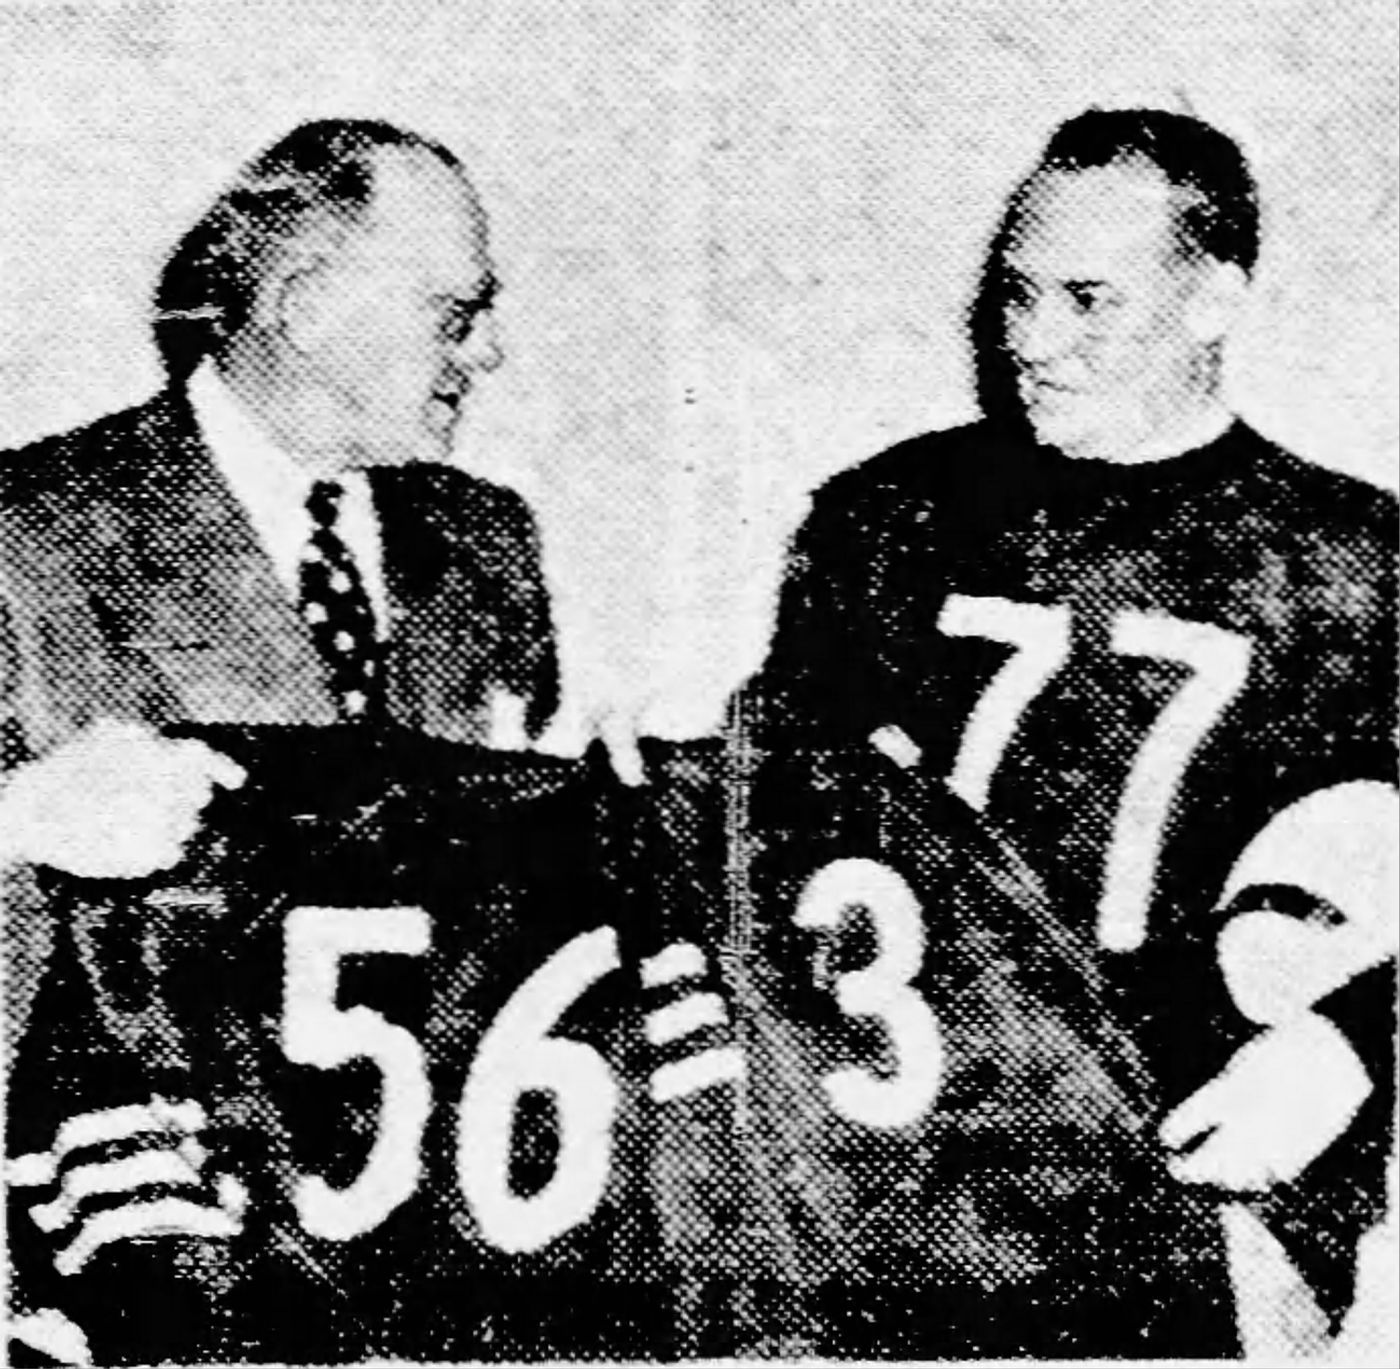 ec8248f7 The 50-Year Plan: how the Bears can unretire numbers and honor more legends  - Windy City Gridiron